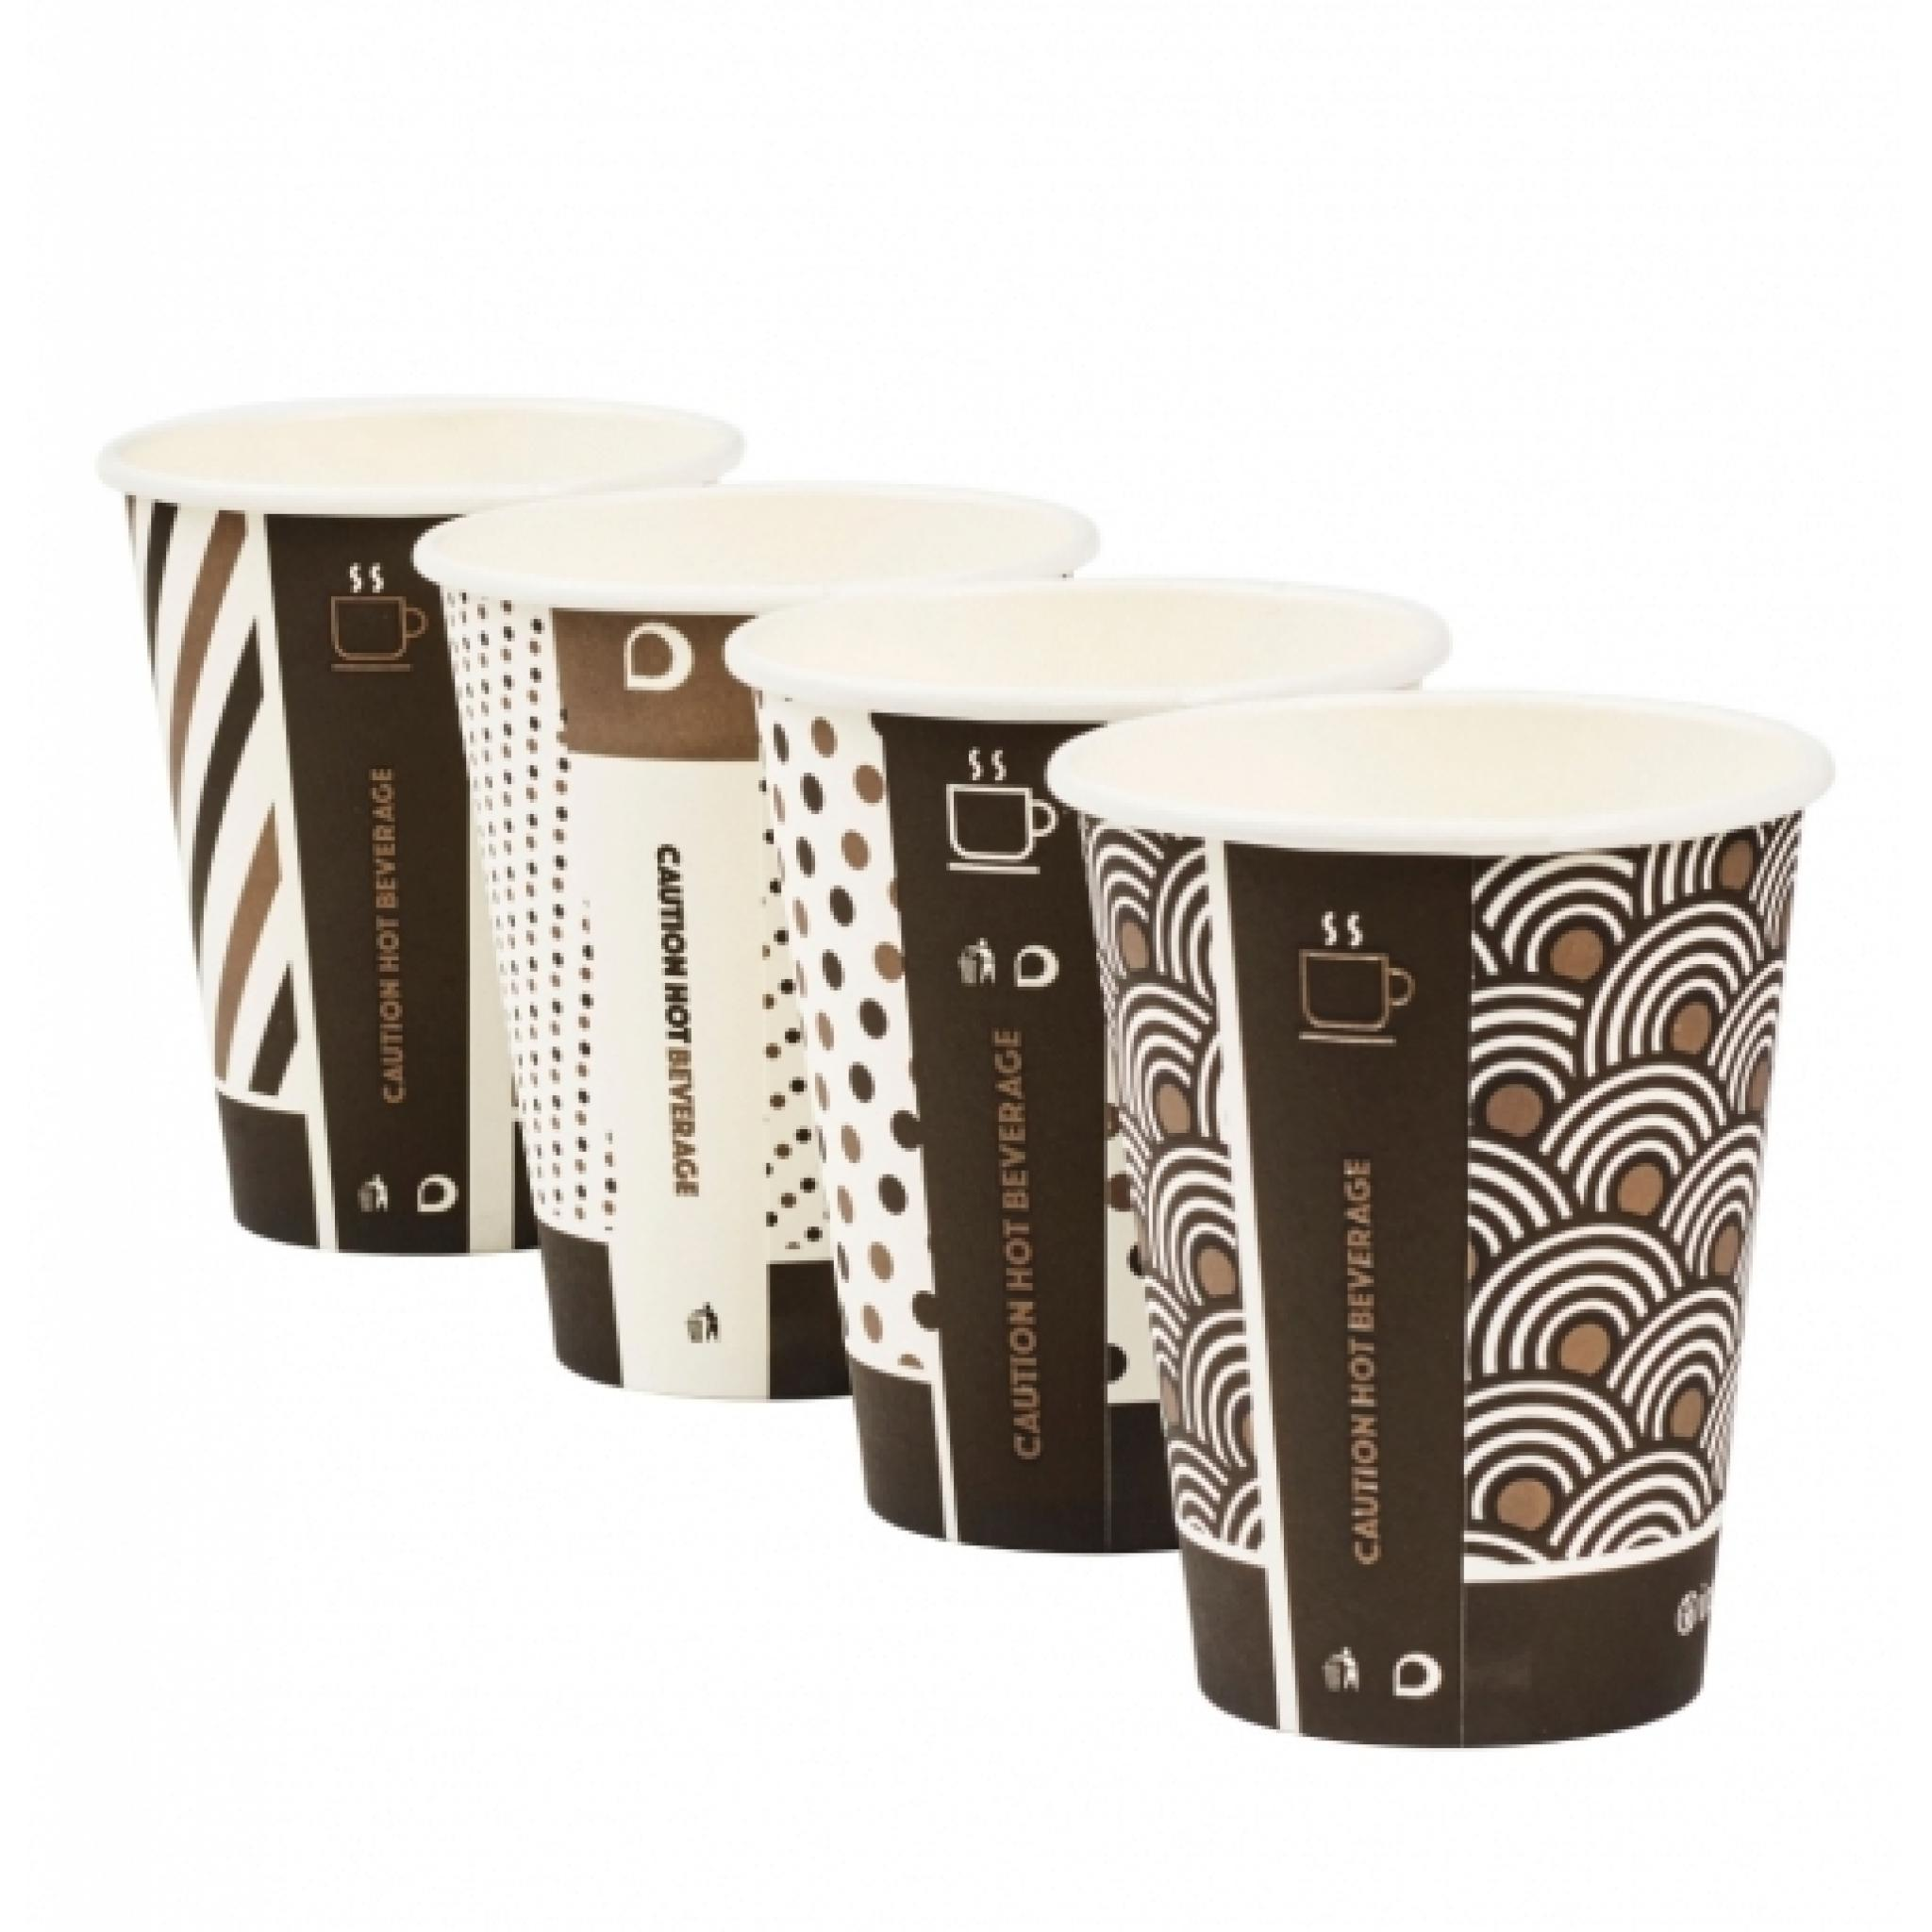 Pack of 50 Eco Friendly Drinks Cups 8oz Mixed Design Bamboo